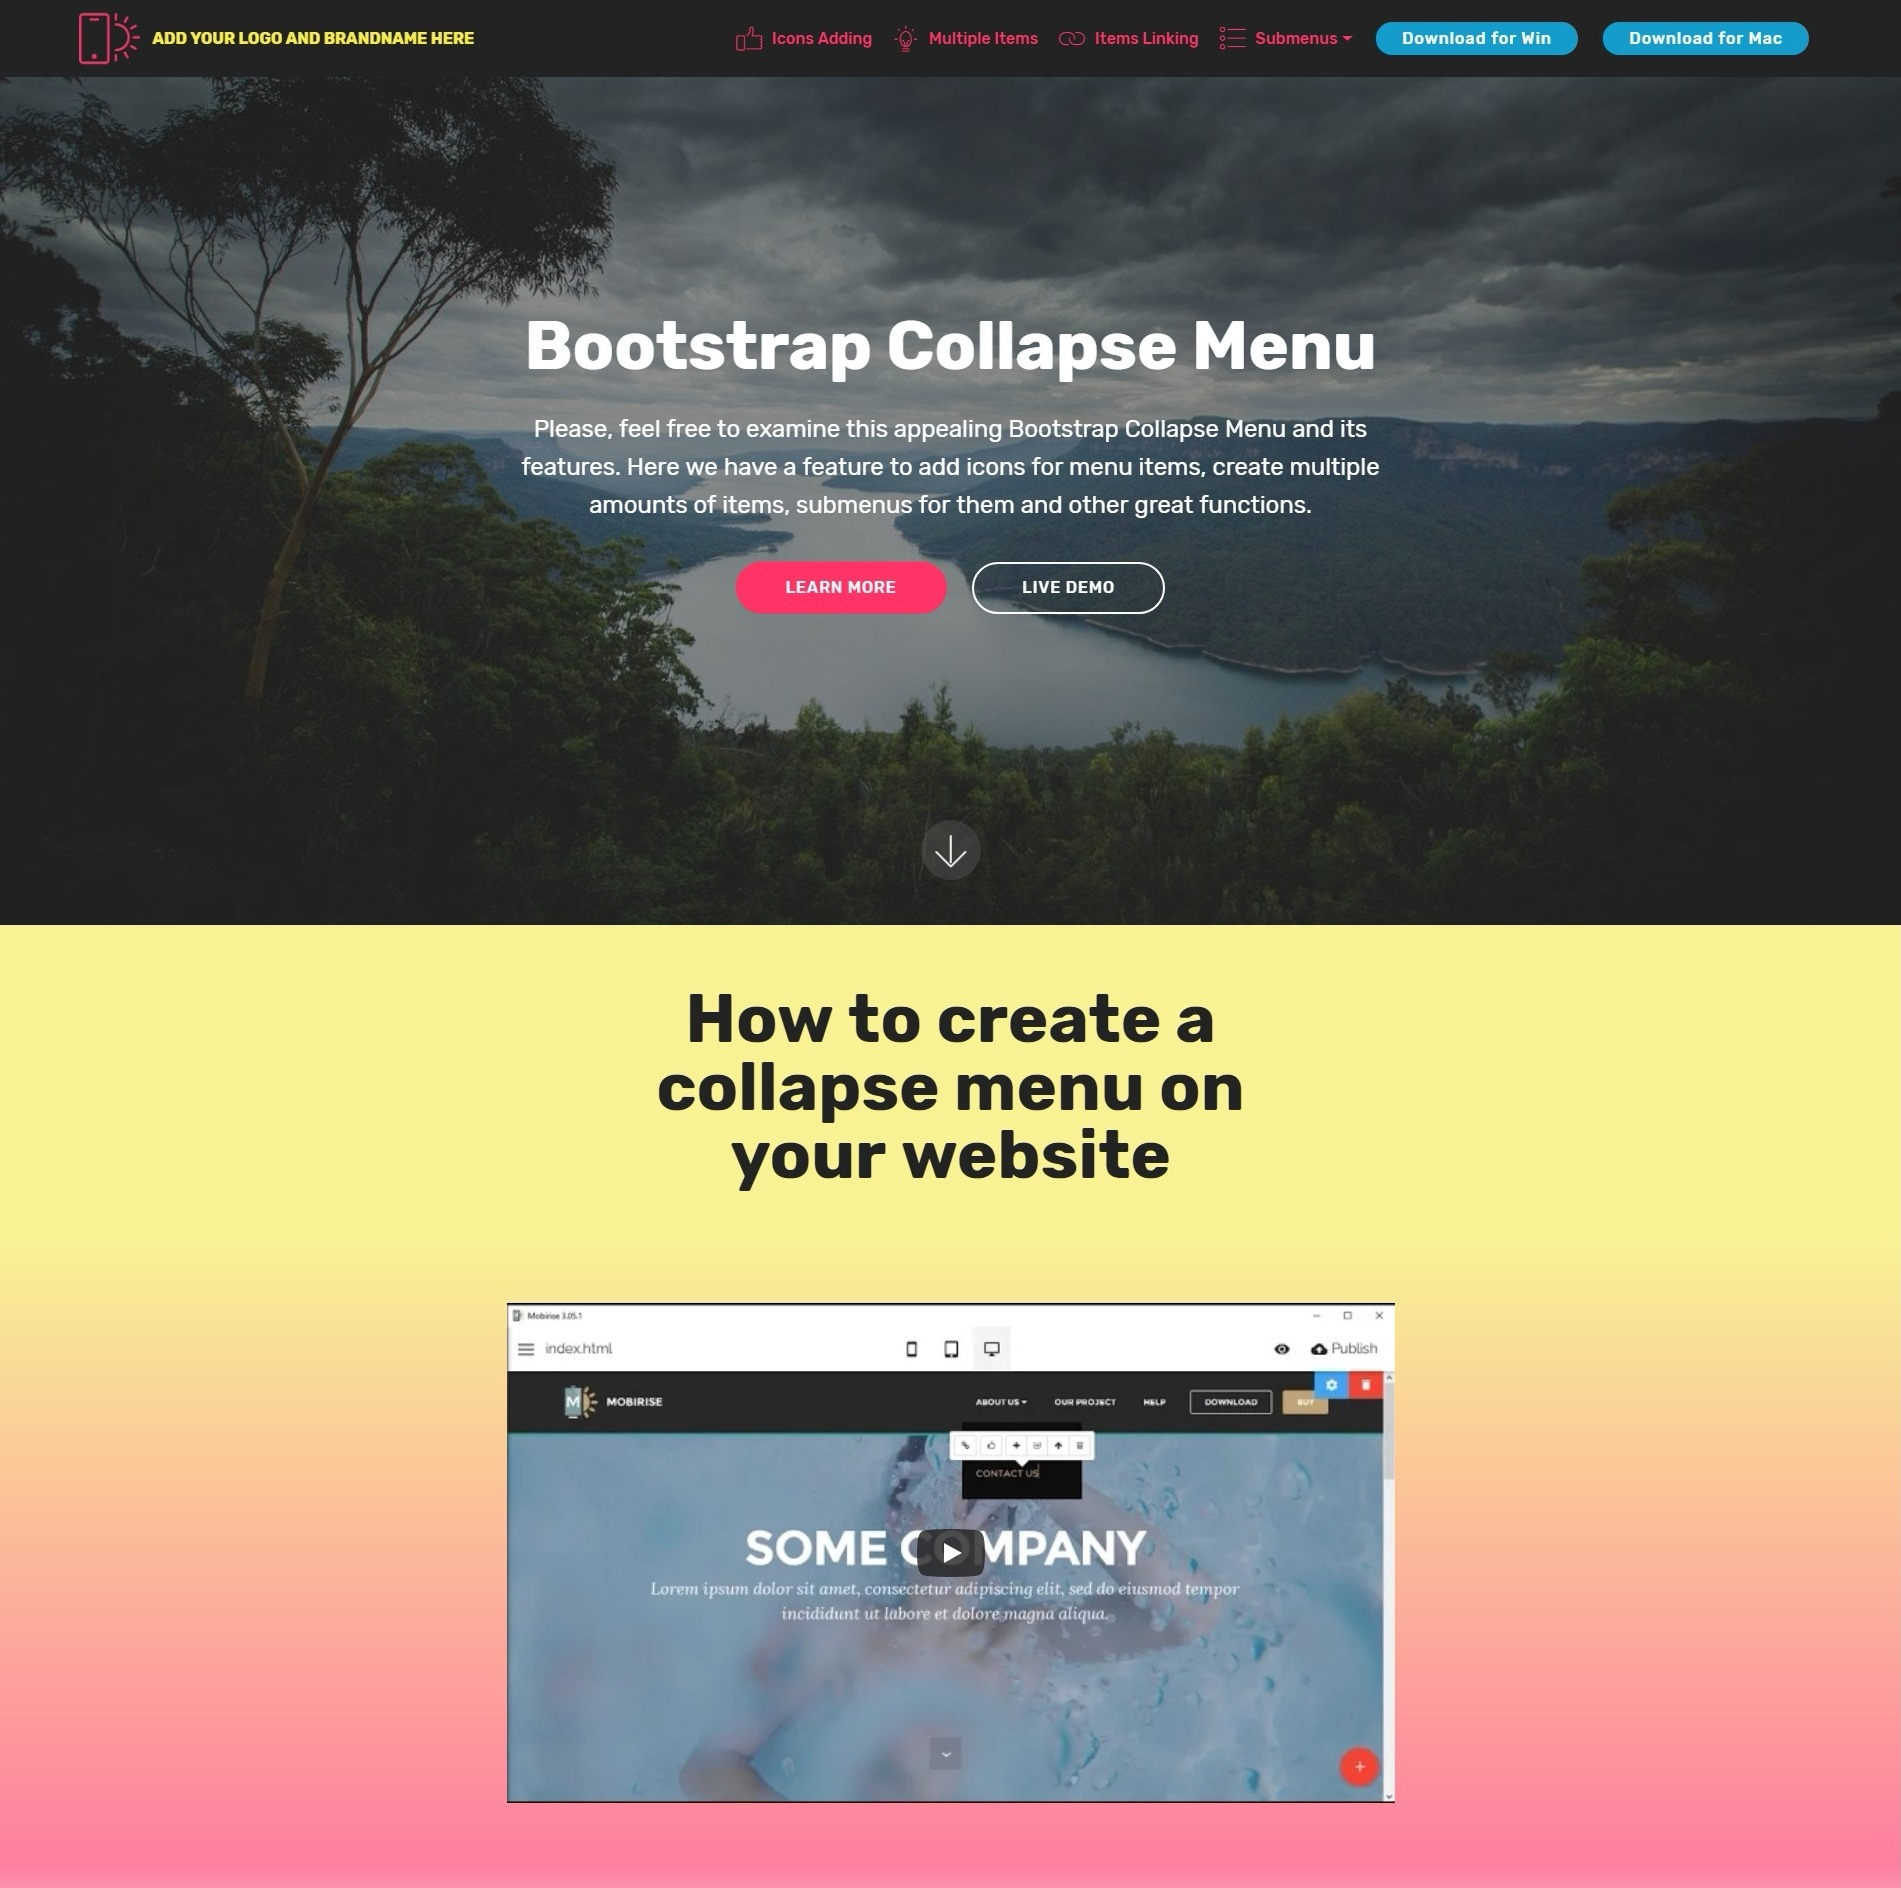 Bootstrap Collapse Menu